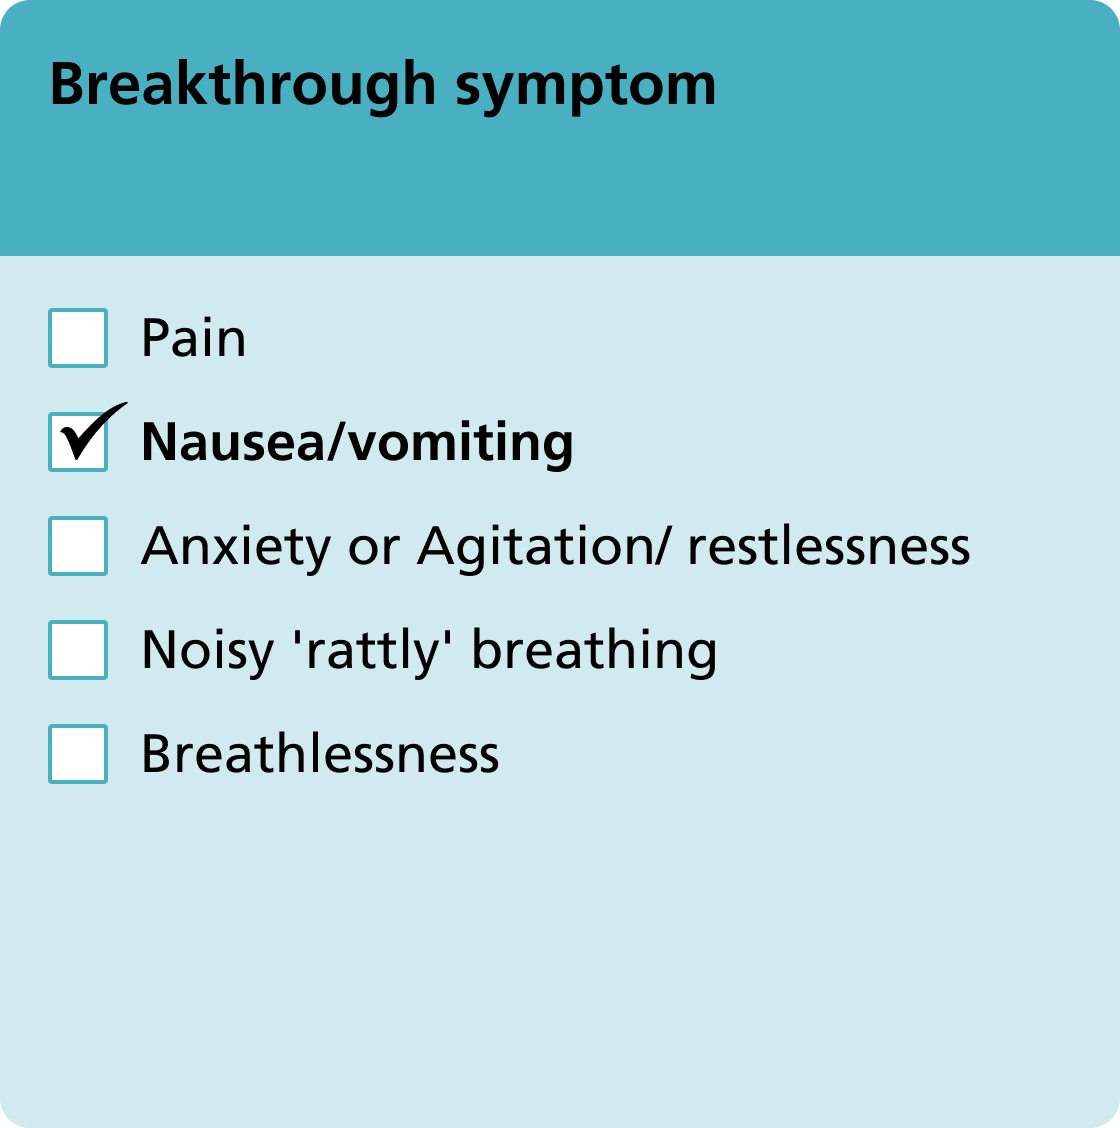 Breakthrough symptom